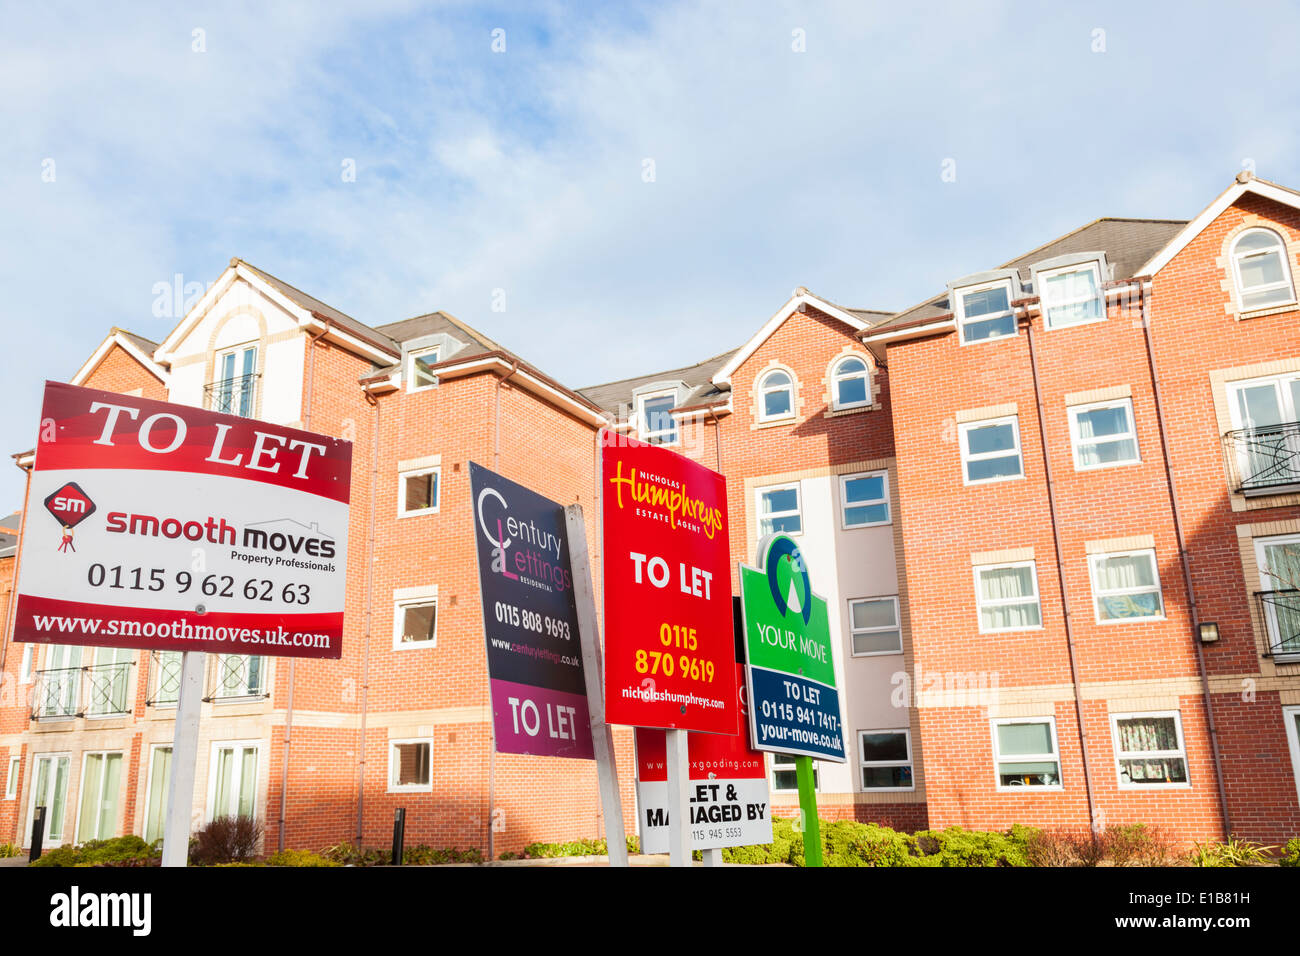 Letting agent boards and signs showing apartments, flats and housing properties to let, Nottinghamshire, England, UK - Stock Image